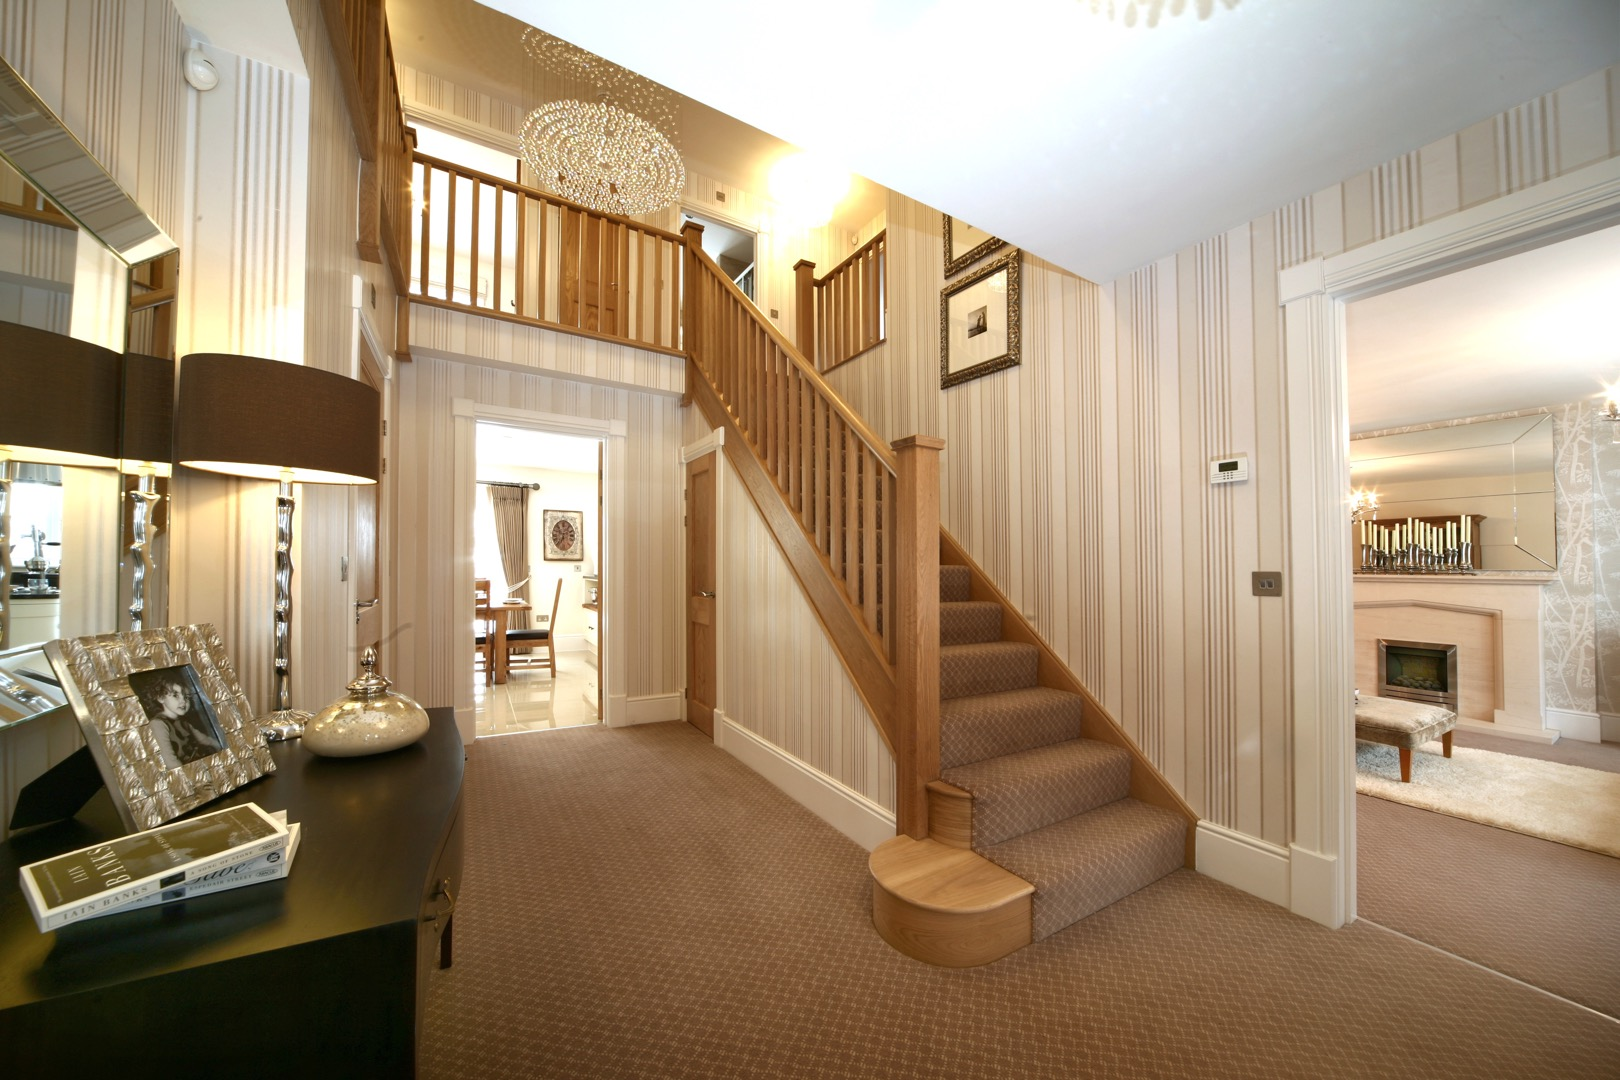 Redrow homes interior design home design and style for Interior design for home photos